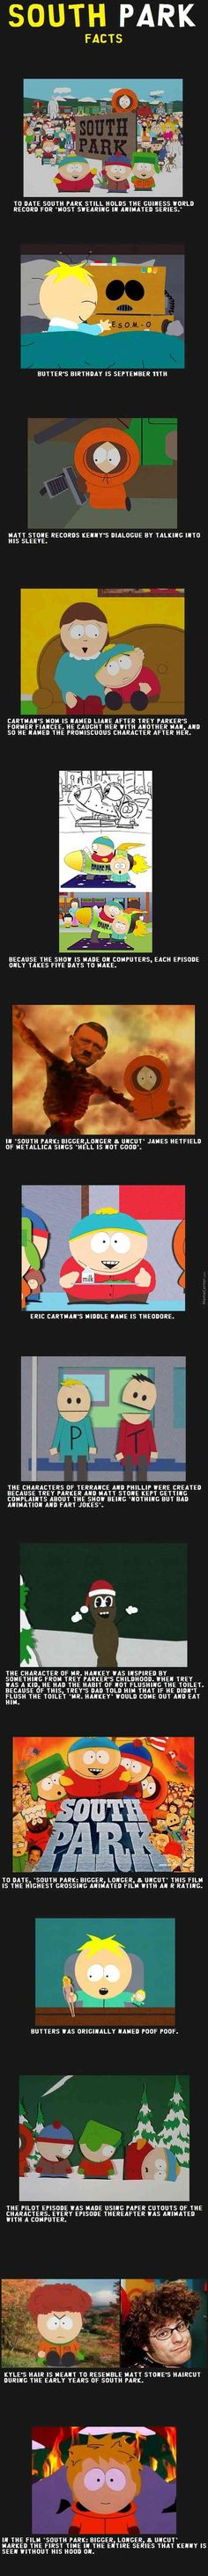 South Park Facts MadeItFunny. Funny, amusing website. Made to make you laugh.